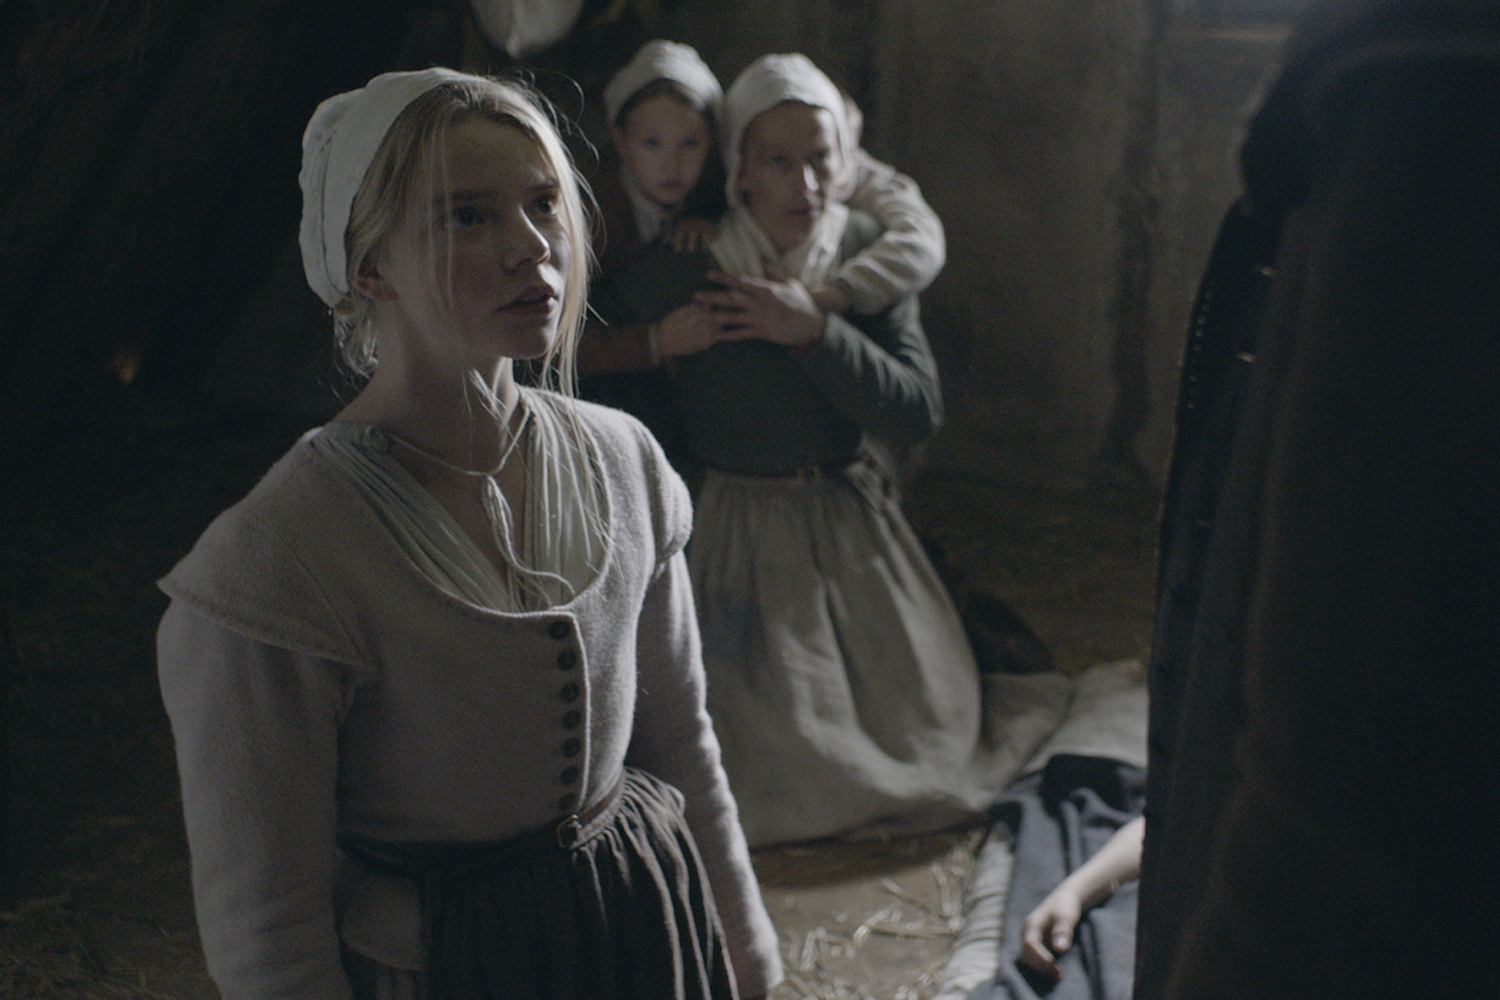 THE WITCH, directed and written by Robert Eggers,